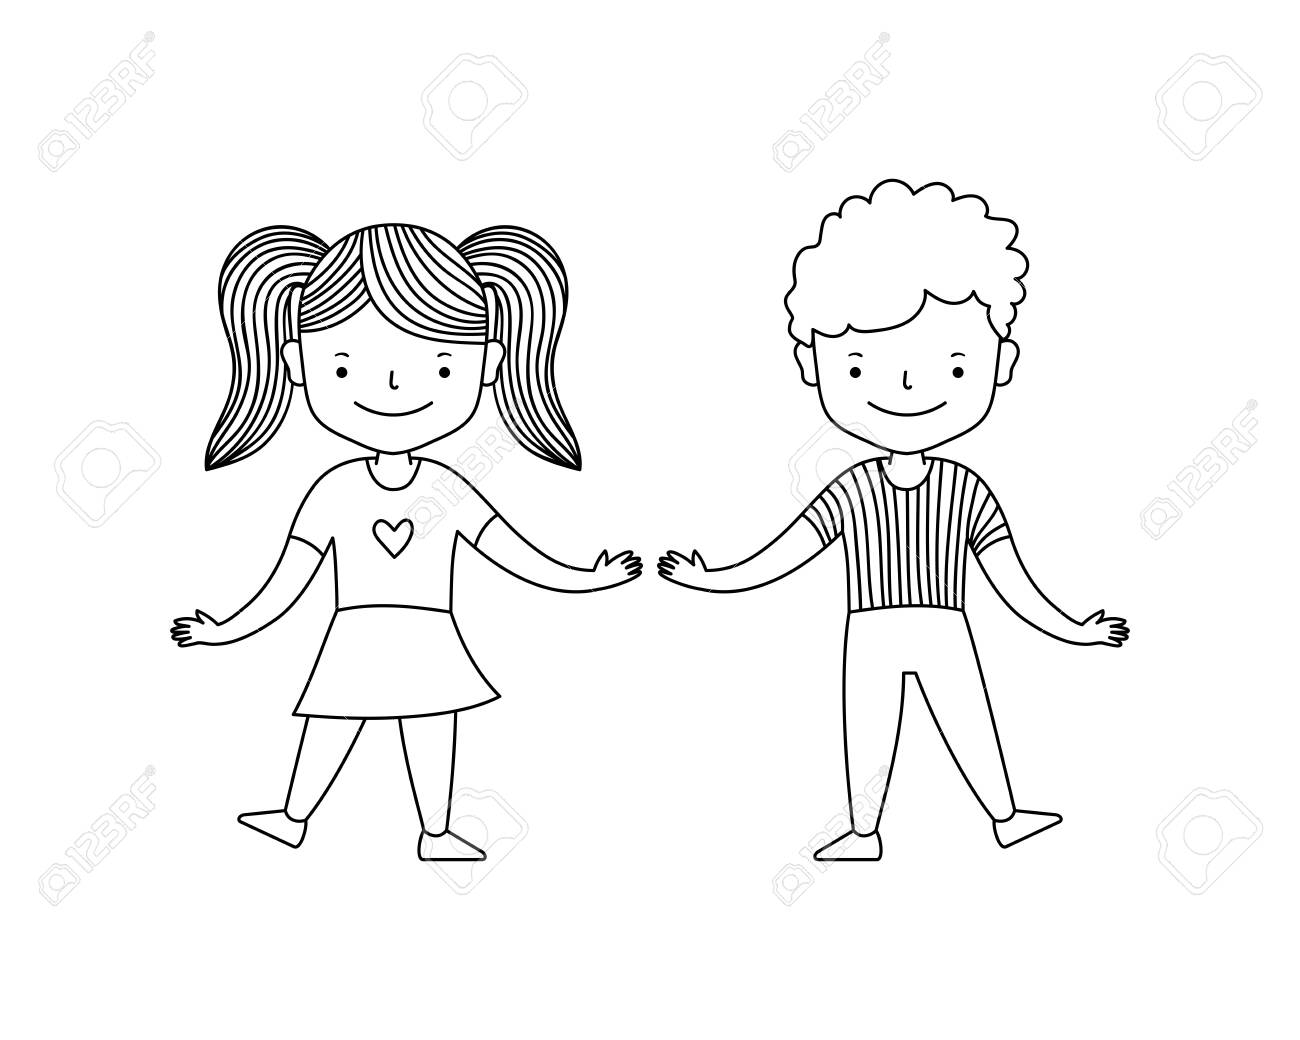 Cute Happy Children Boy With Girl Dancing Cartoon Style Black Royalty Free Cliparts Vectors And Stock Illustration Image 139172498